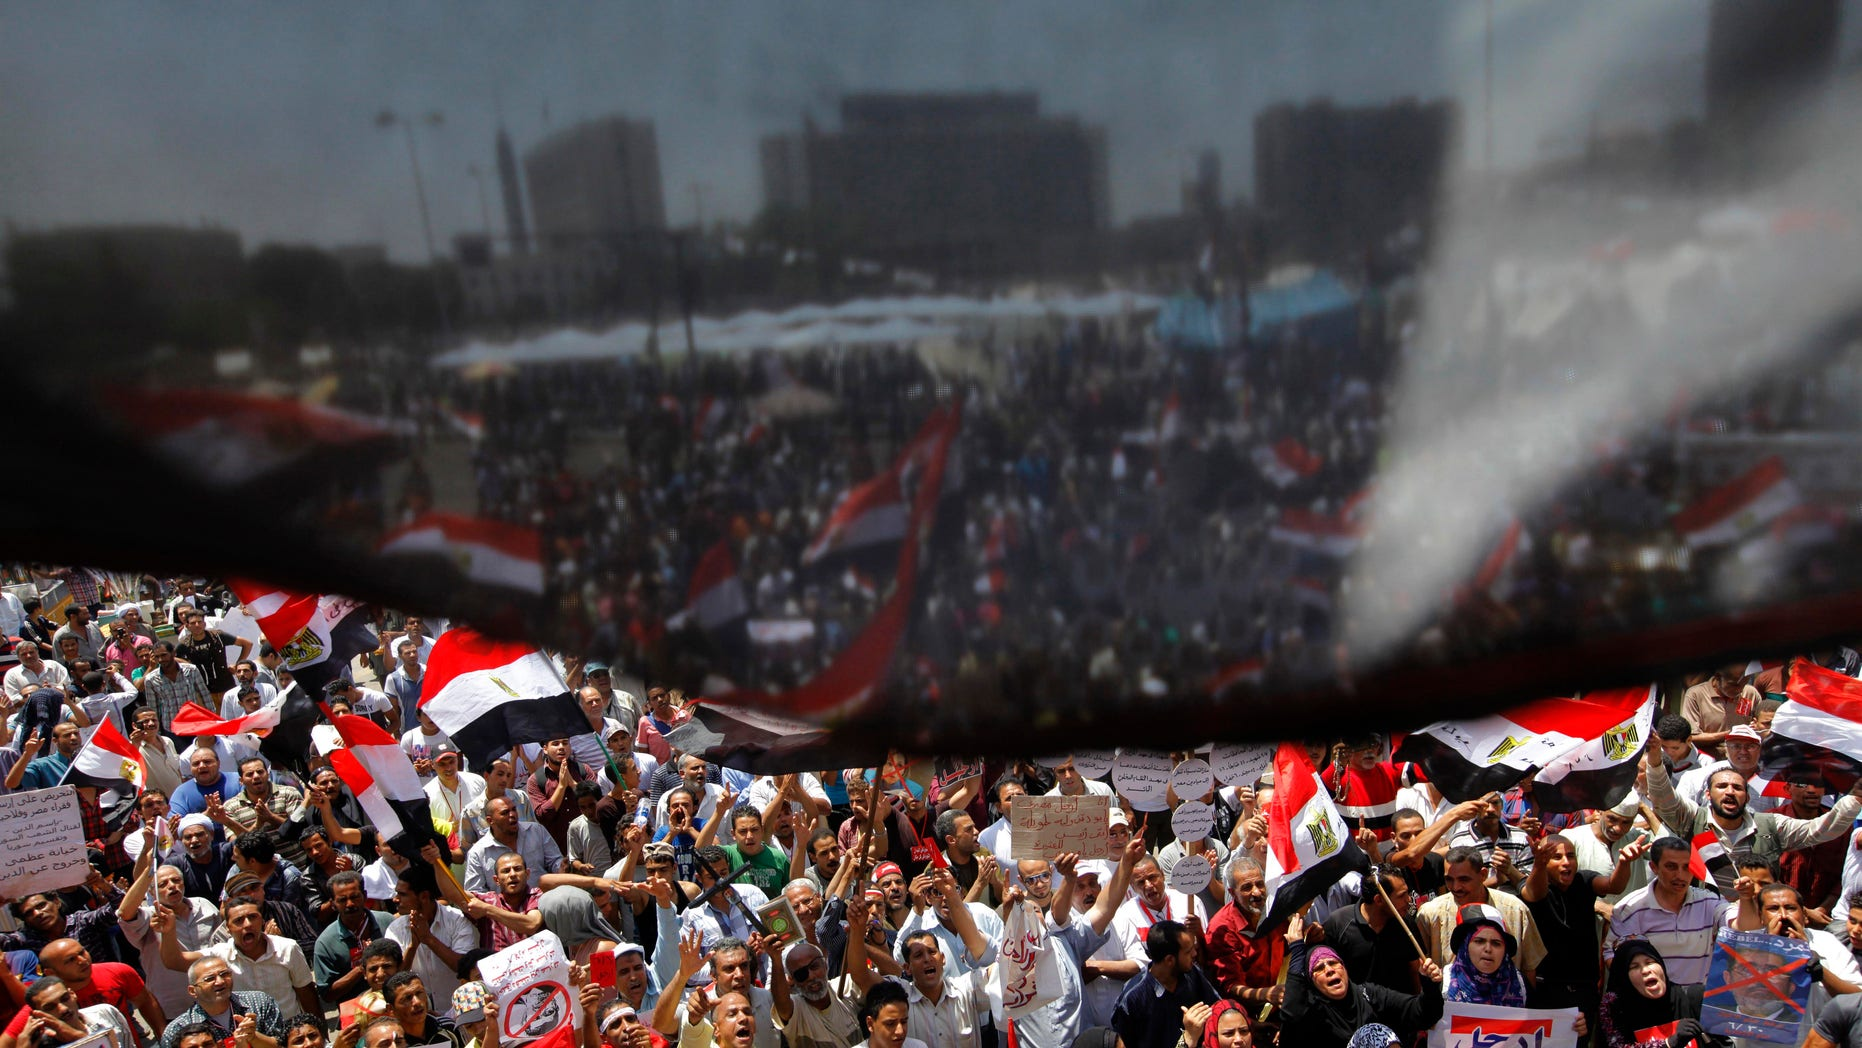 Opponents of Egypt's Islamist President Mohammed Morsi wave national flags as they demonstrate in Tahrir Square in Cairo, Egypt, Friday, June 28, 2013. (AP Photo/Amr Nabil)